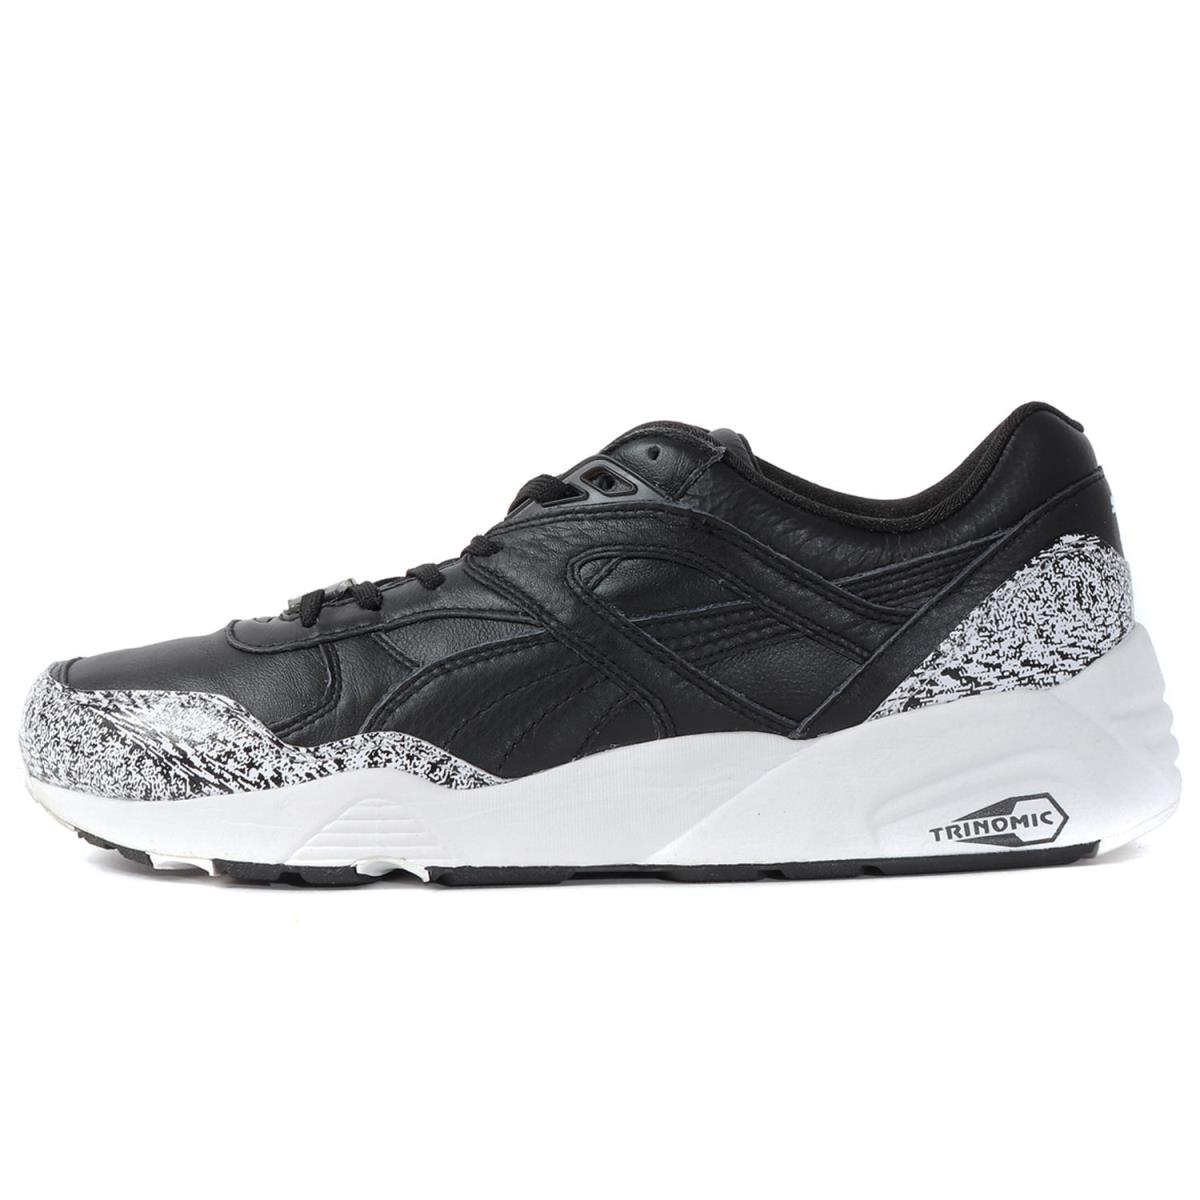 BEEGLE by Boo-Bee  PUMA (Puma) R698 SNOW SPLATTER PACK (358 52d950a78